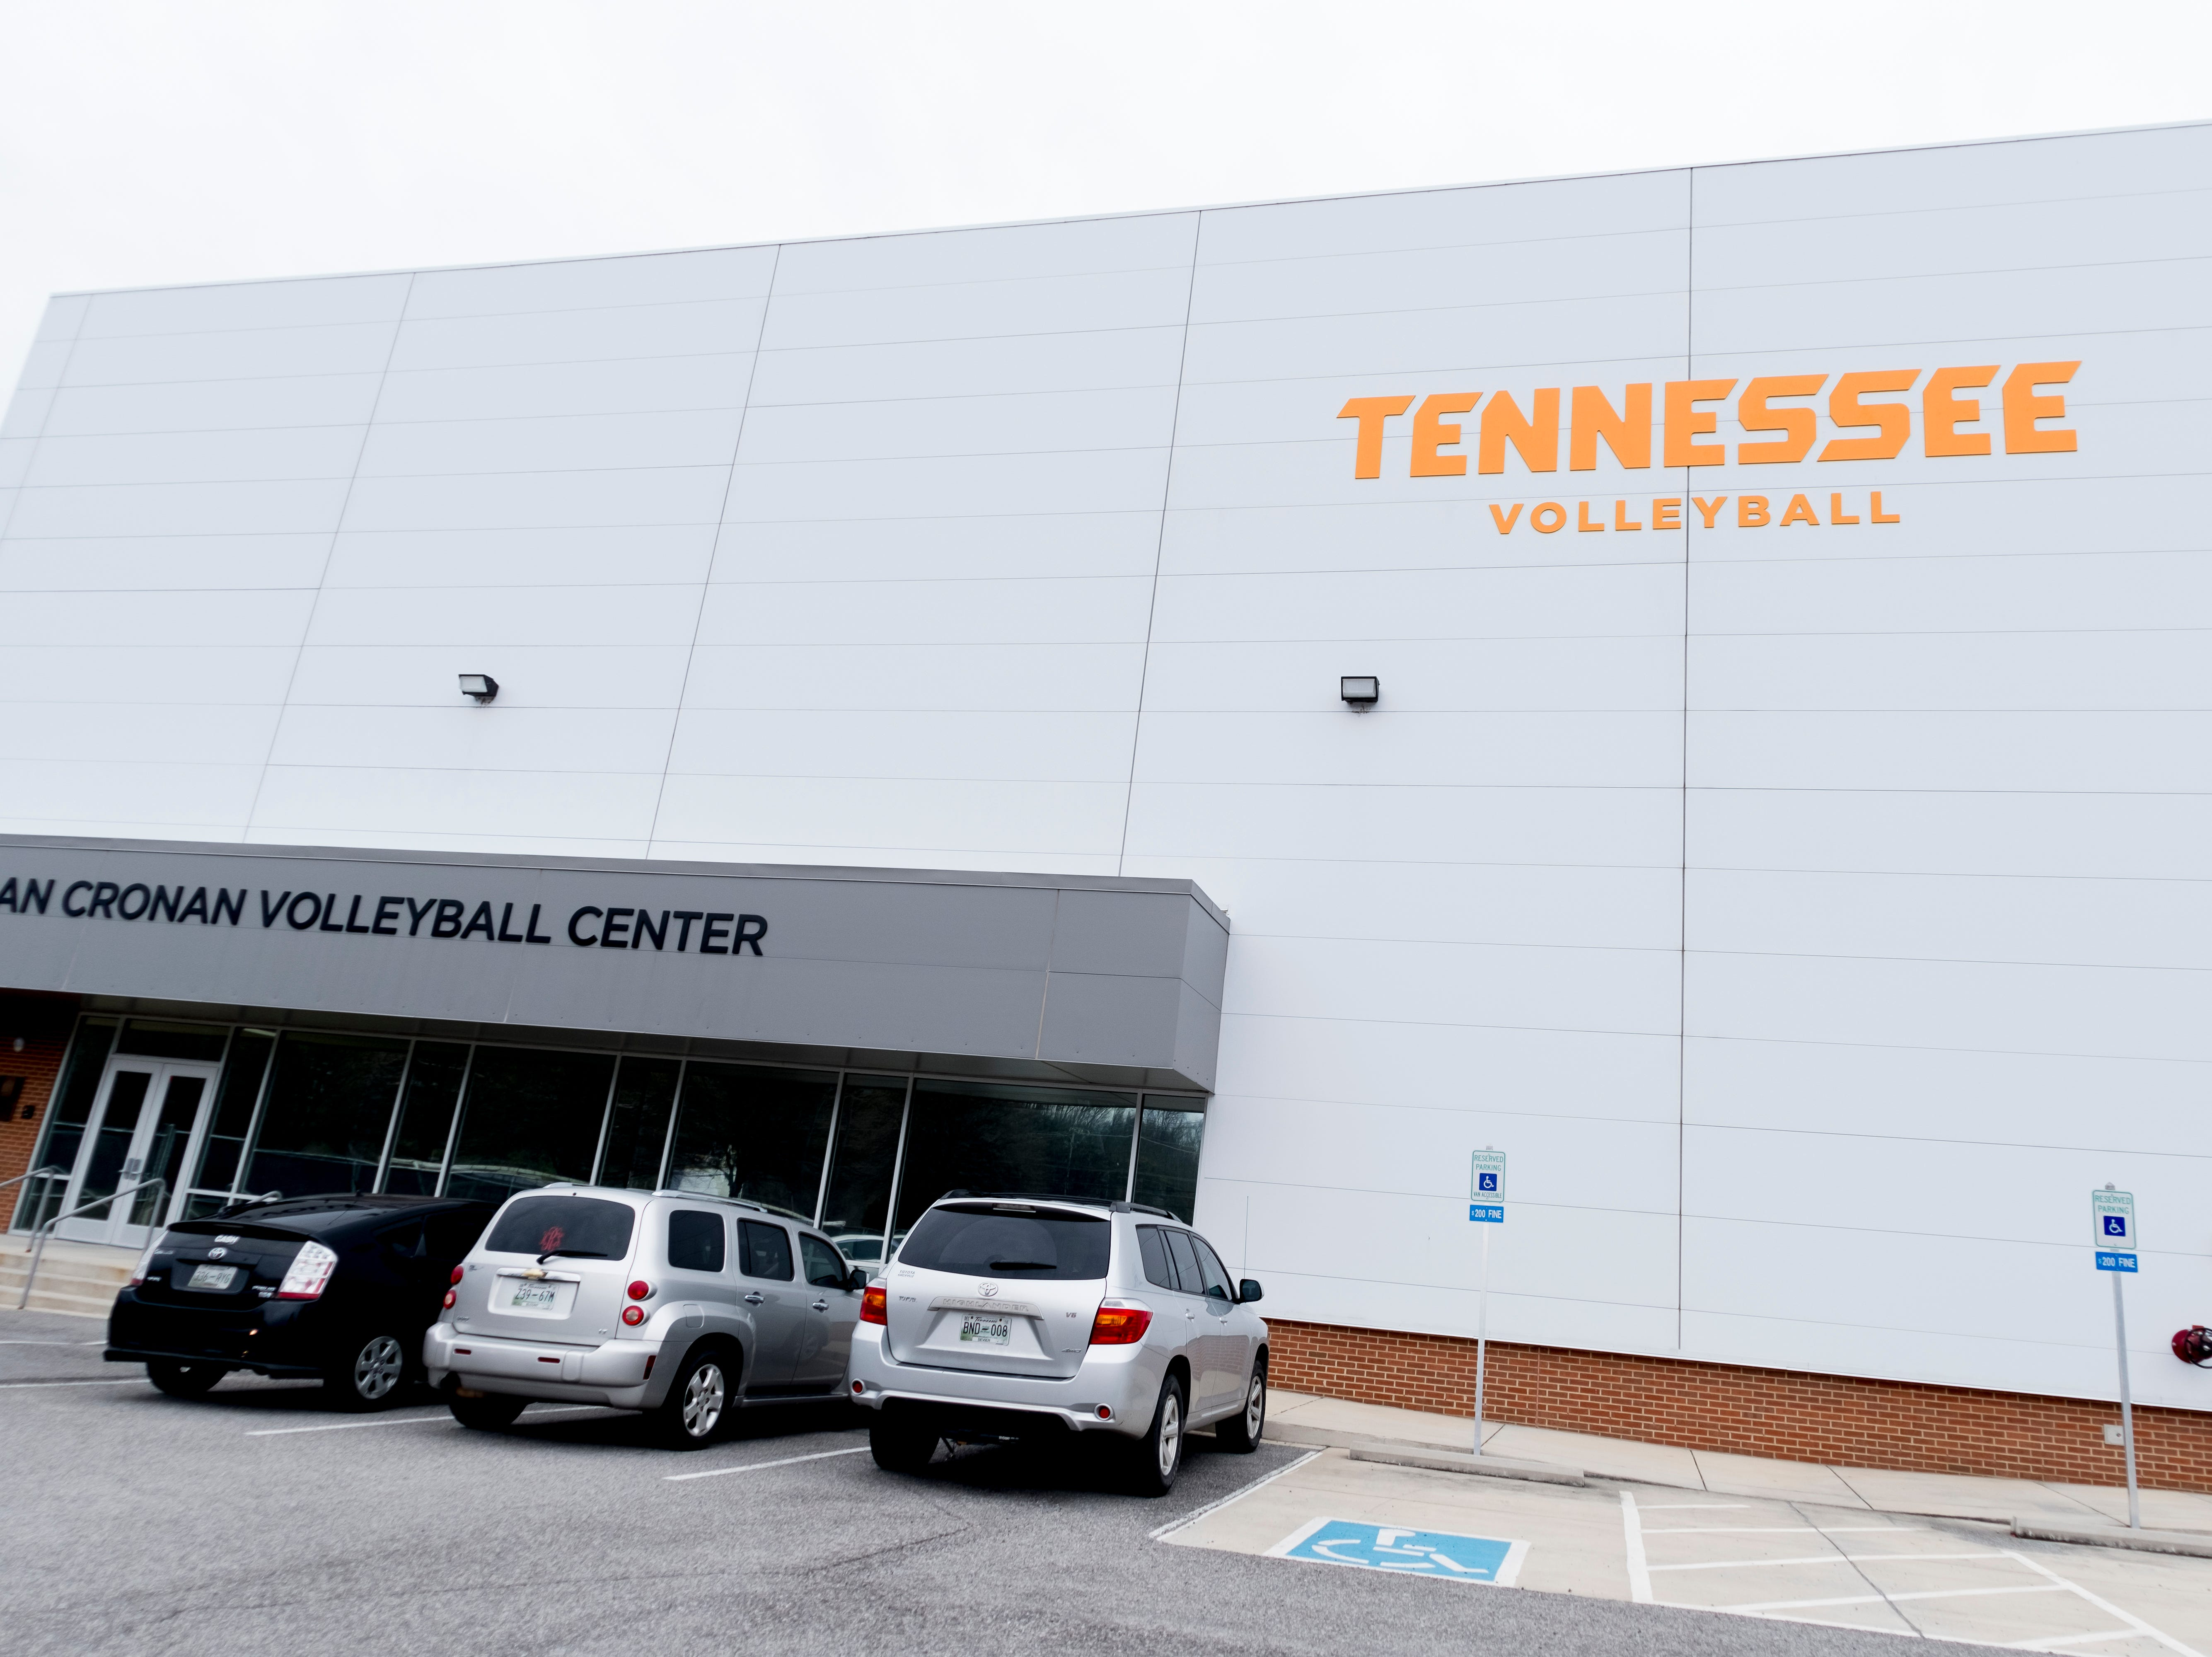 Joan Cronan Volleyball Practice Facility on the University of Tennessee campus in Knoxville, Tennessee on Wednesday, January 2, 2019.